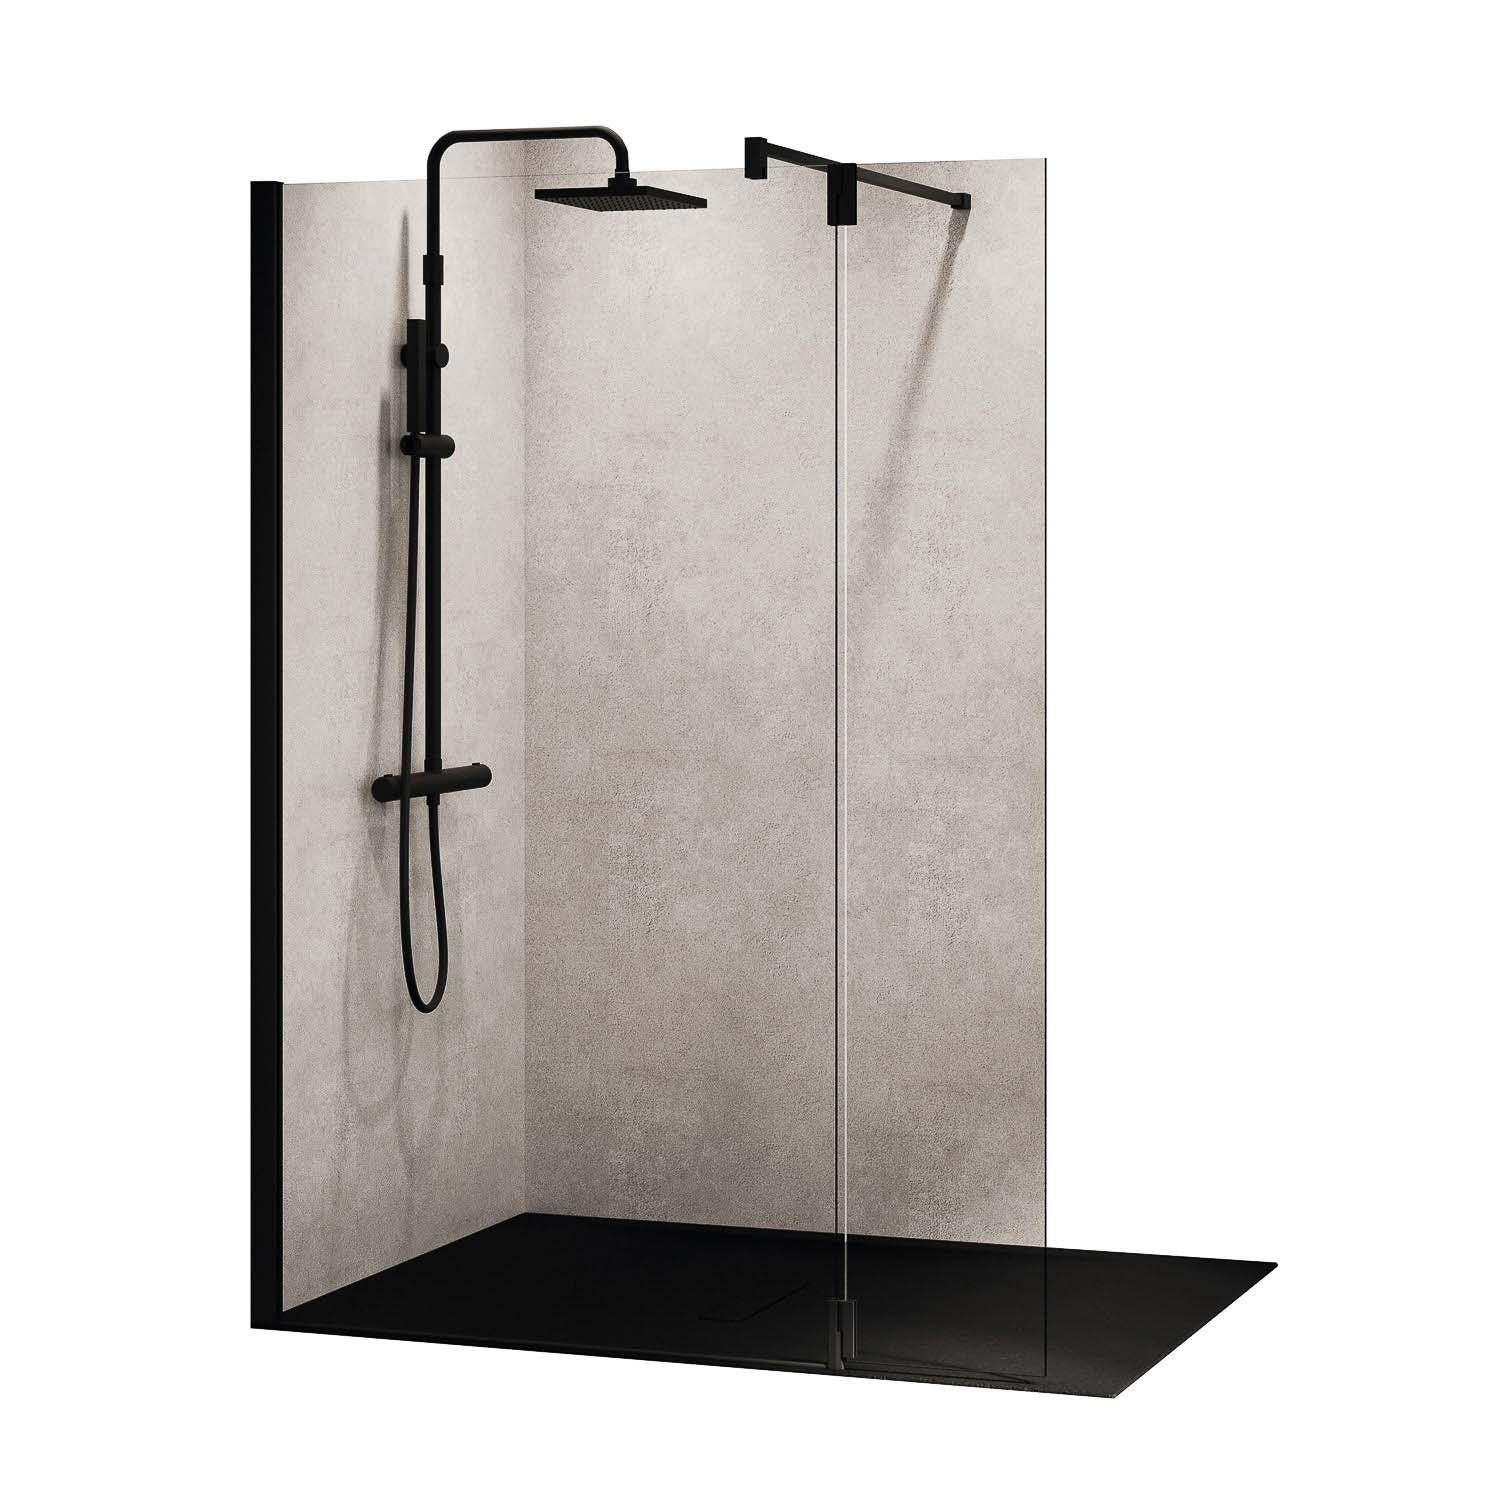 670-700mm Ergo Wet Room Screen Clear Glass with a matt black finish on a white background